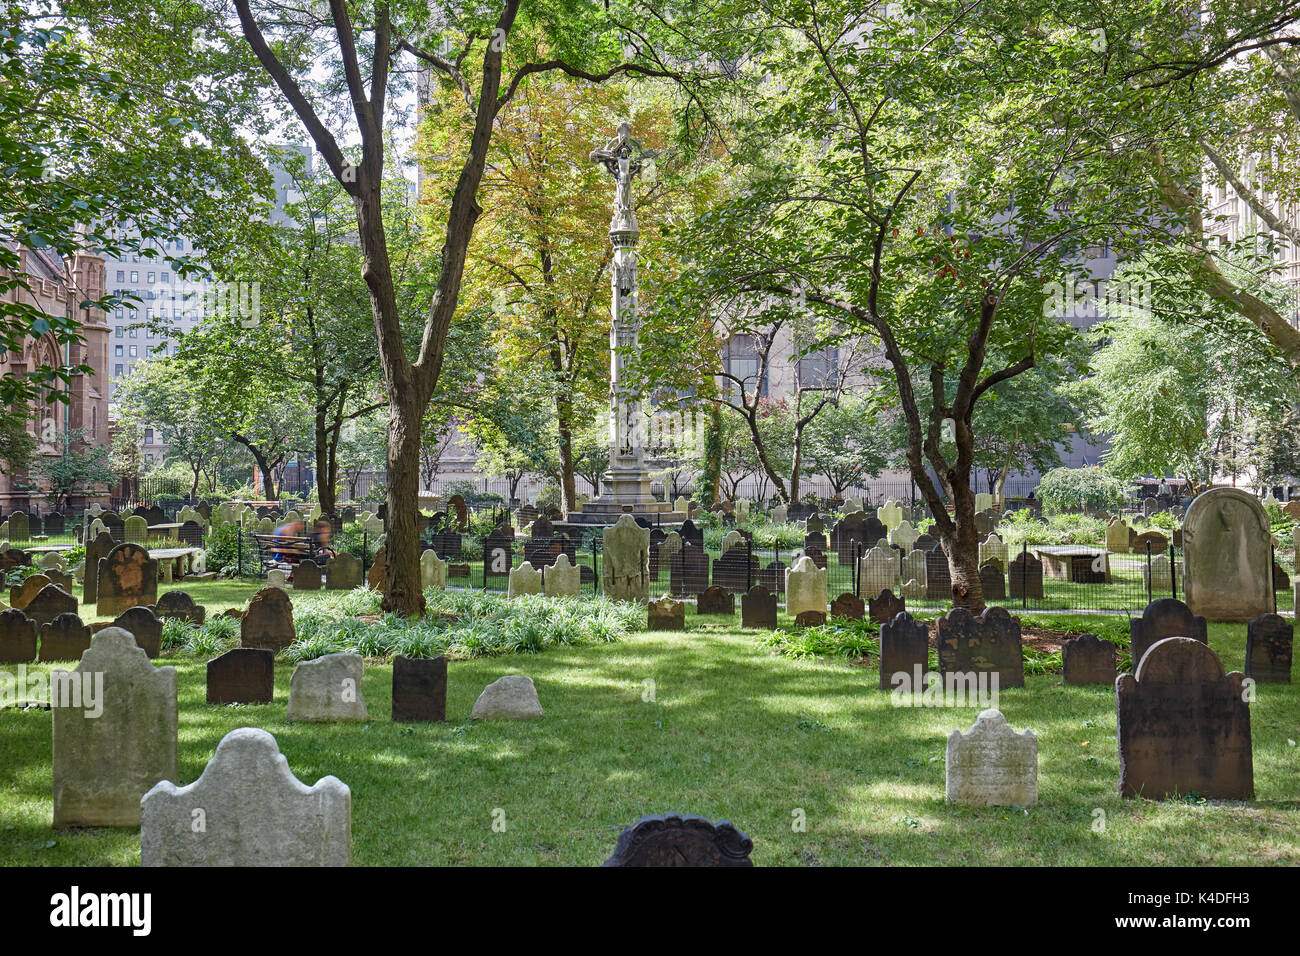 Trinity Church cemetery with green grass in a sunny day. This is the only active cemetery in Manhattan. - Stock Image